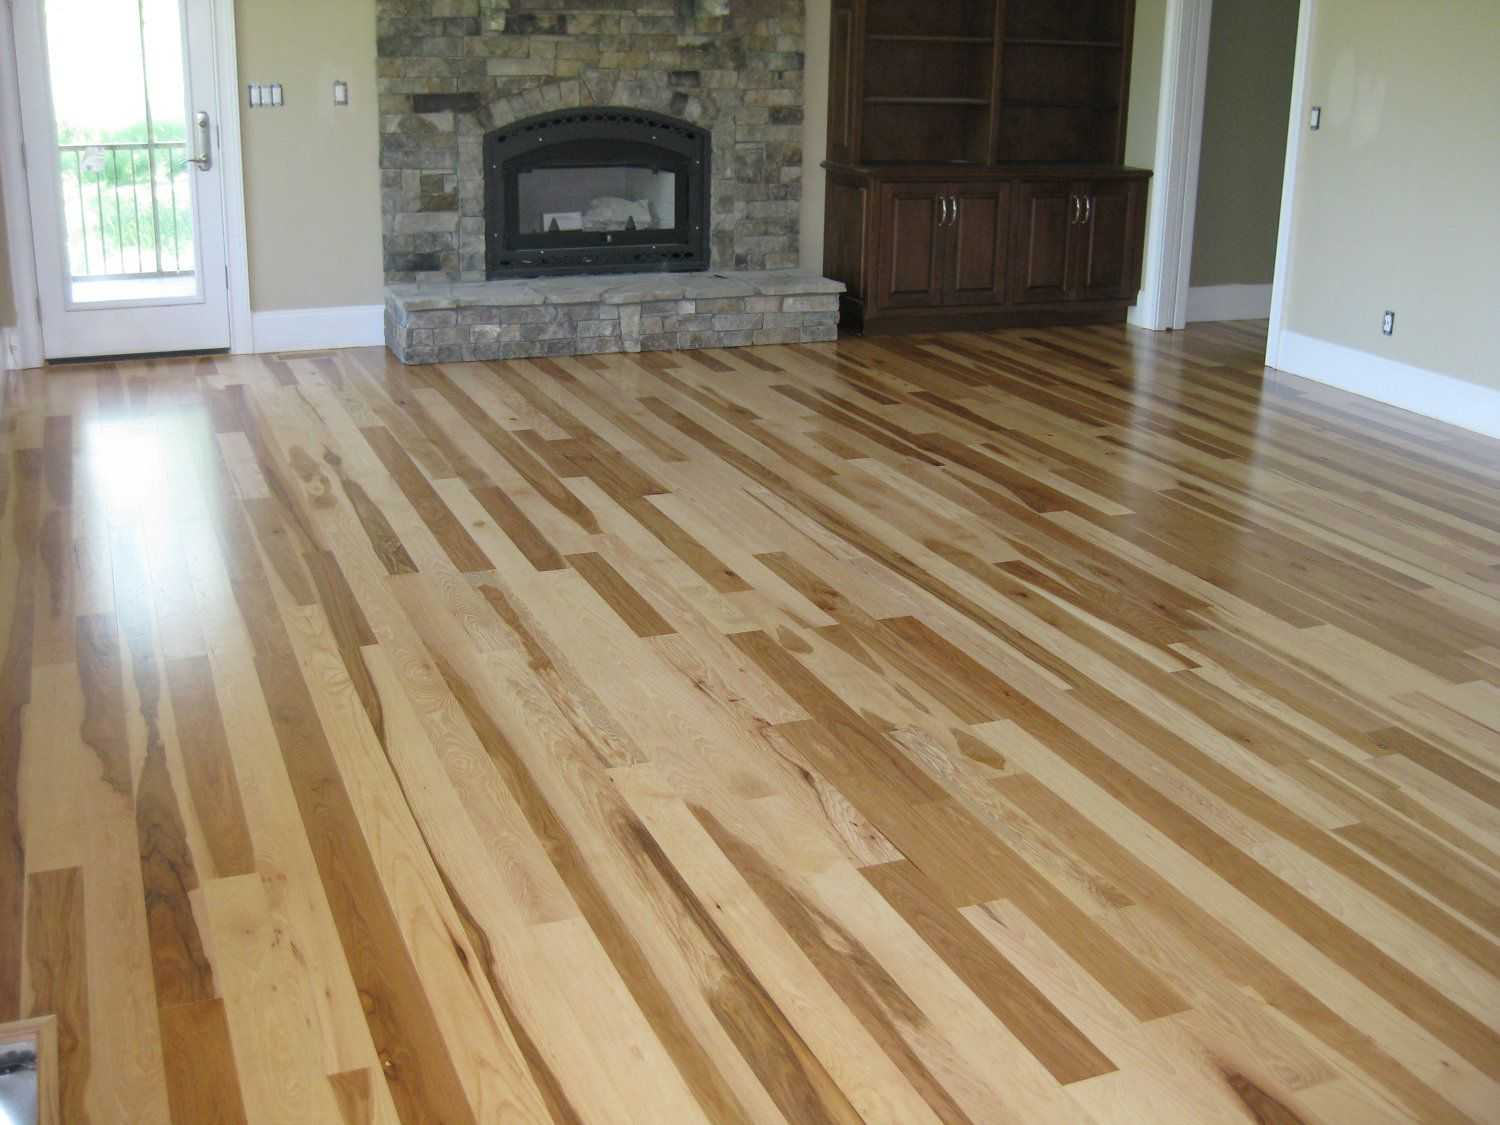 Dark Hardwood Floors Light Colored Knots, Calico Hickory Flooring la la living room Hickory